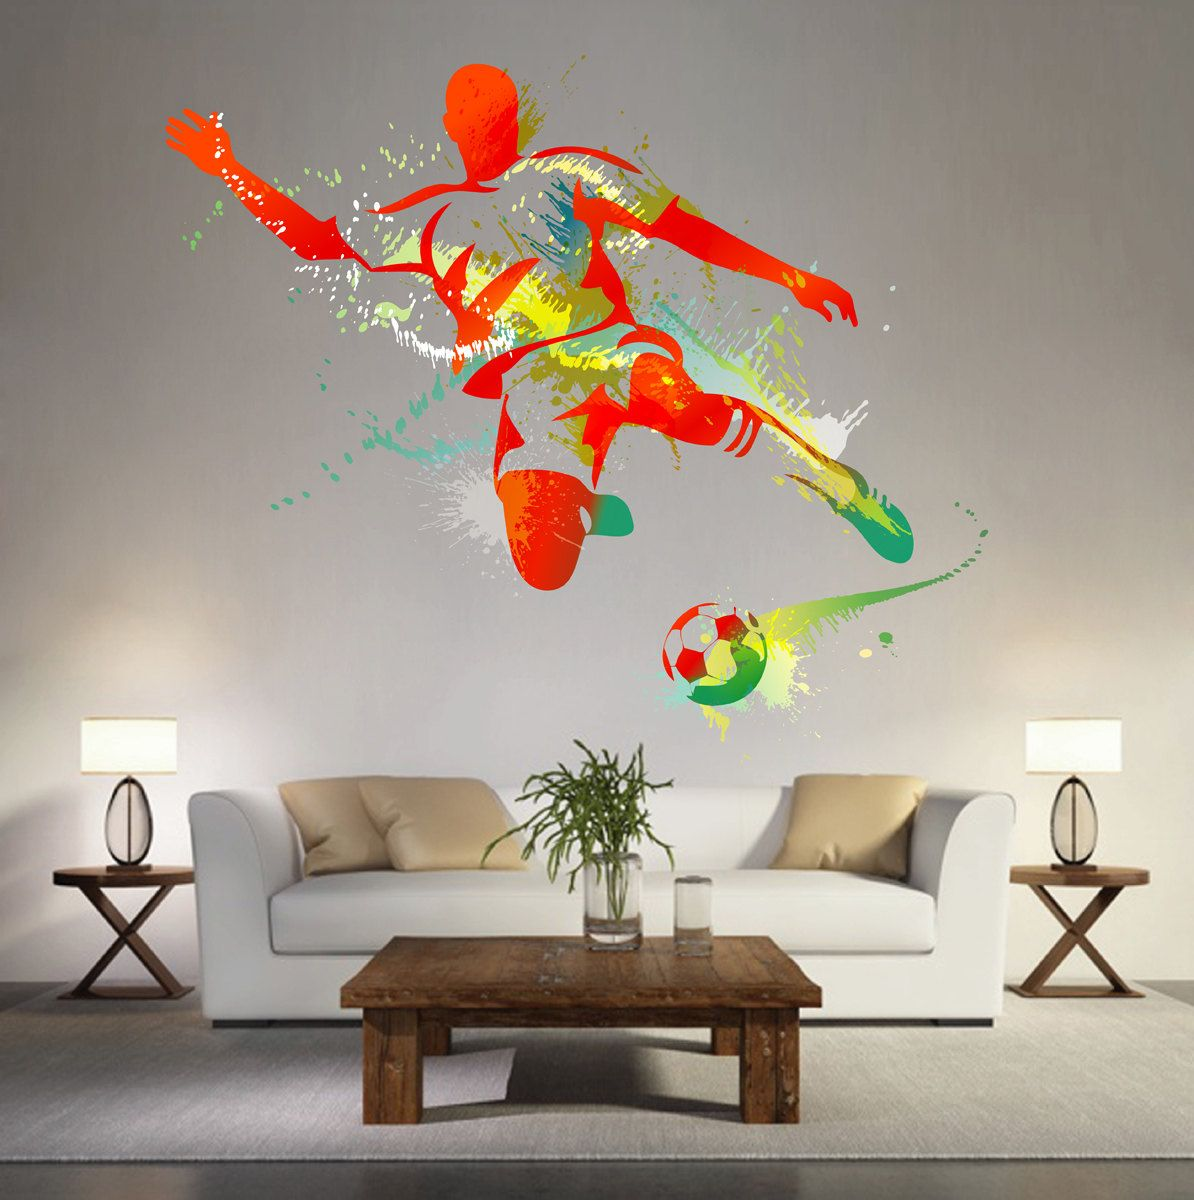 Soccer Player Wall Decals Football Player Wall Decals Soccer Wall - Sporting wall decals